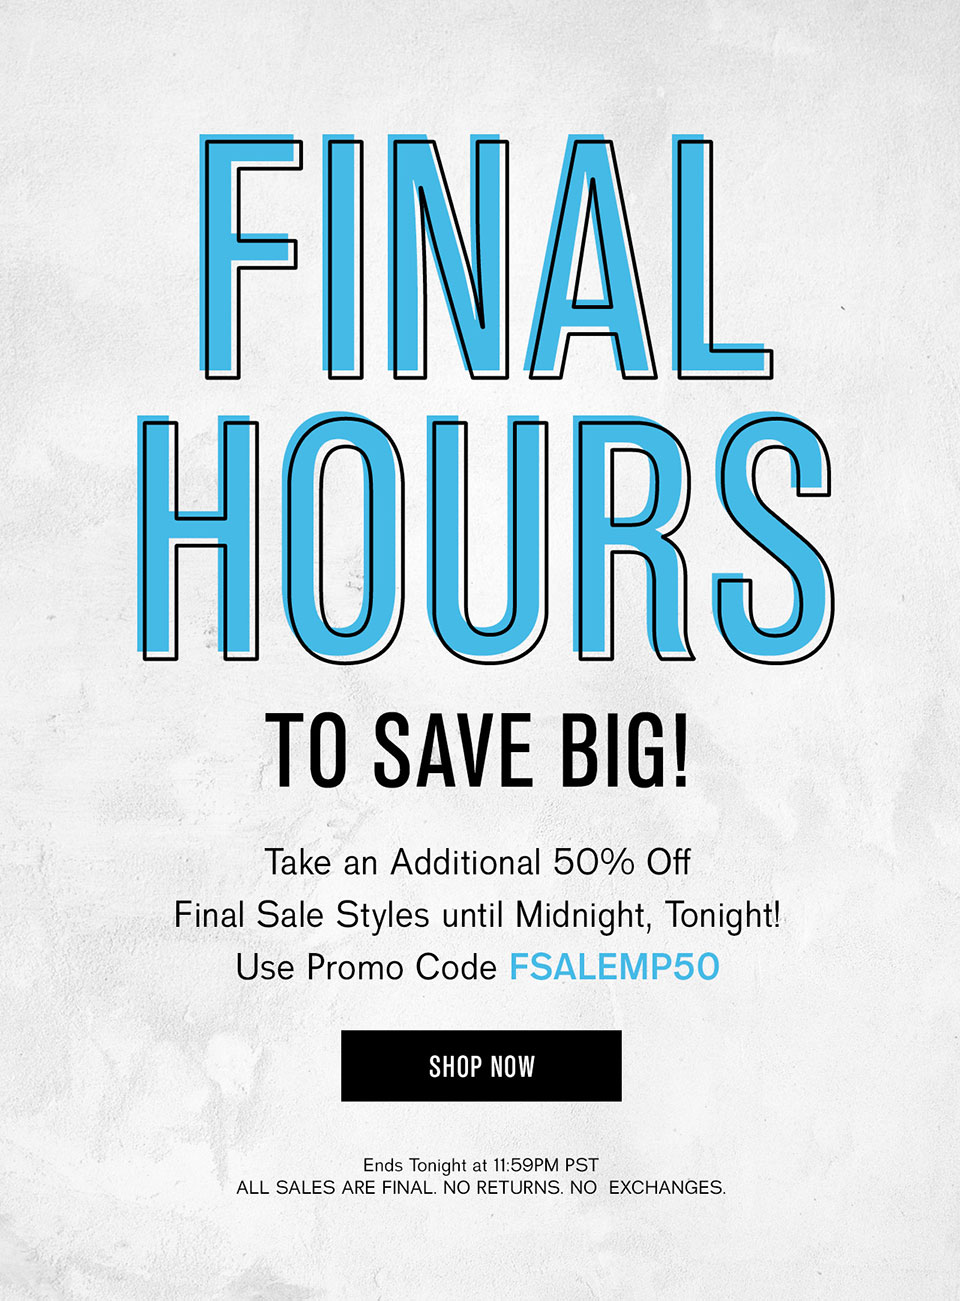 Save an Additional 50% Off Final Sale Styles!